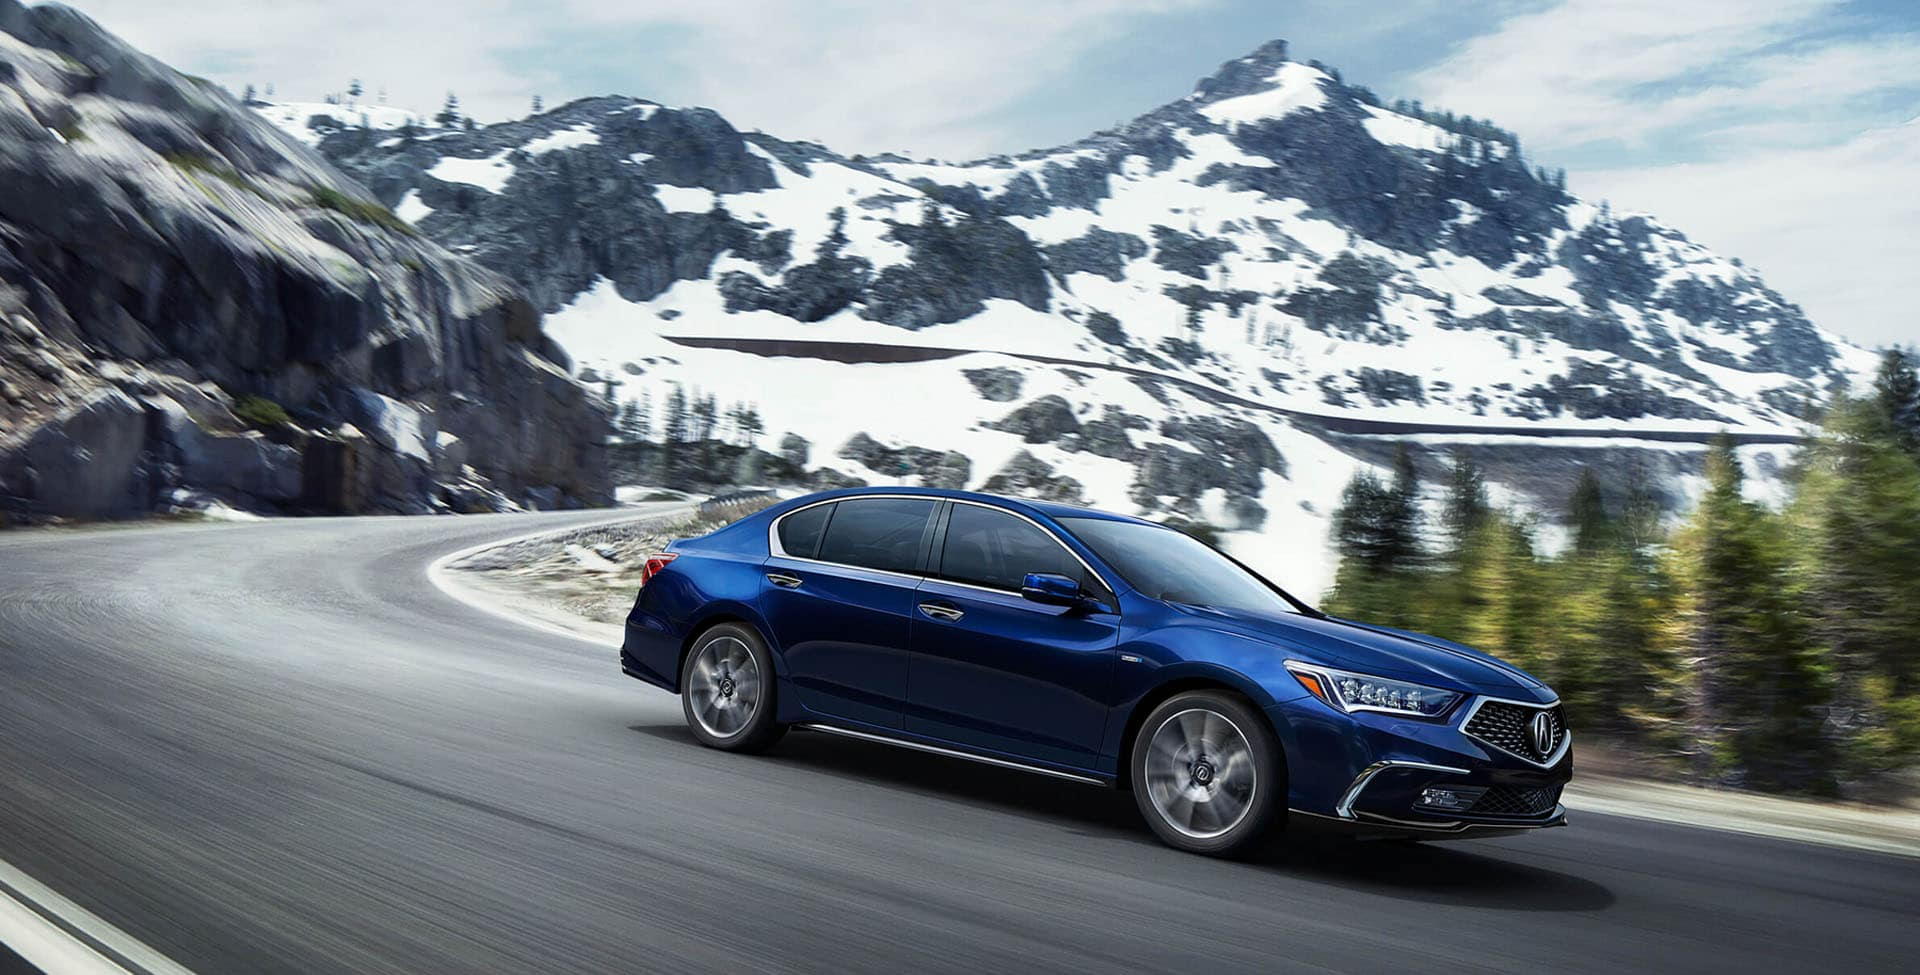 Blue Acura RLX driving through the mountains